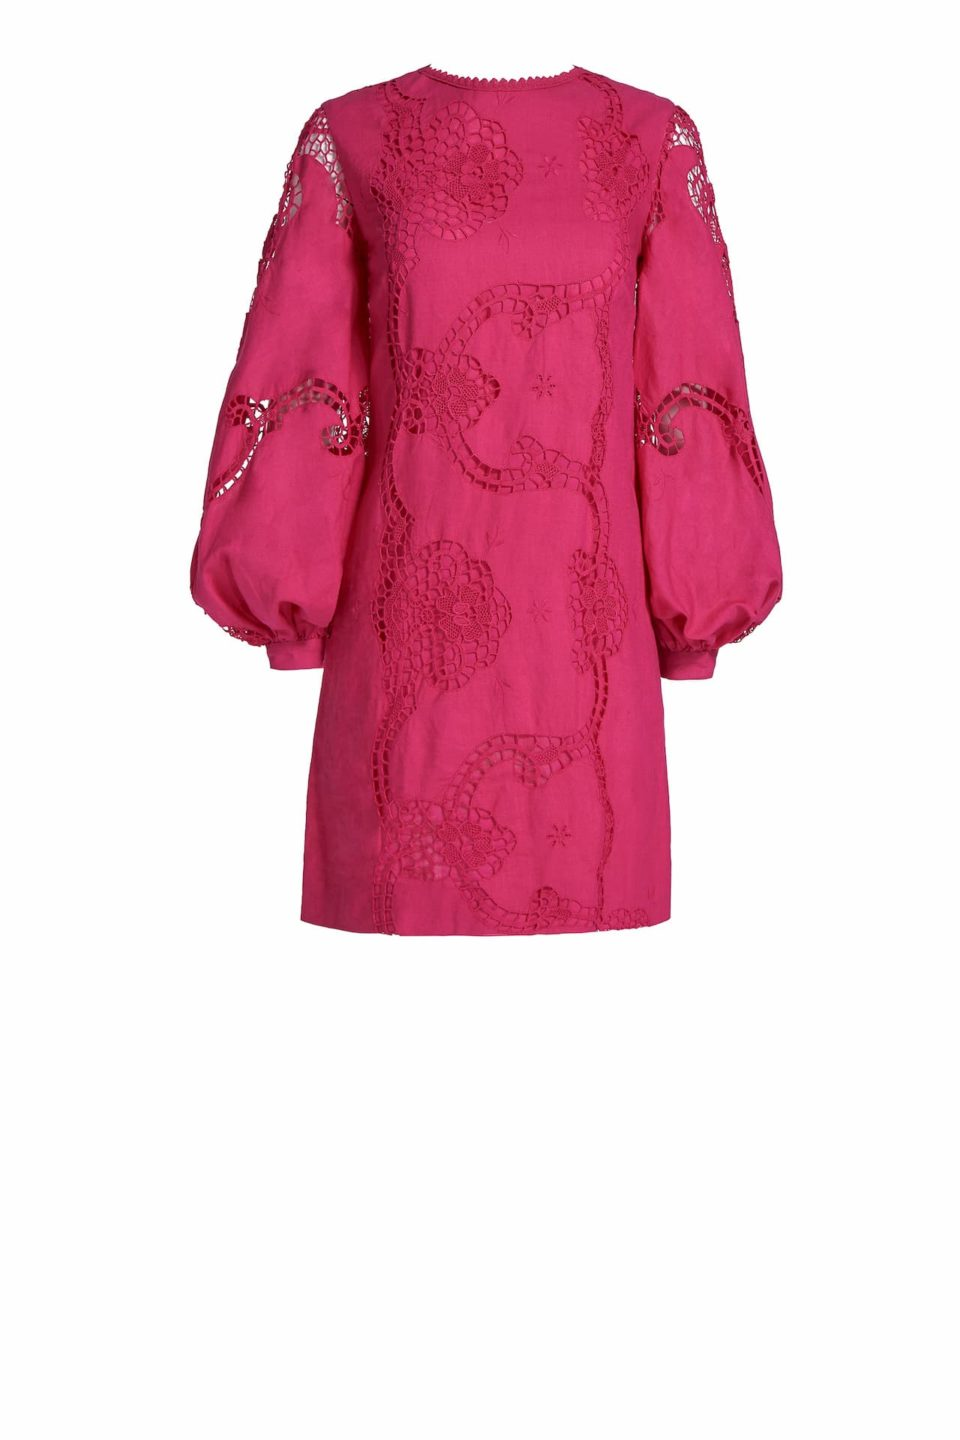 Finnie PR2011 Pink Linen Shift Dress with Balloon Sleeves & Greek Traditional Reticella Lace Detail